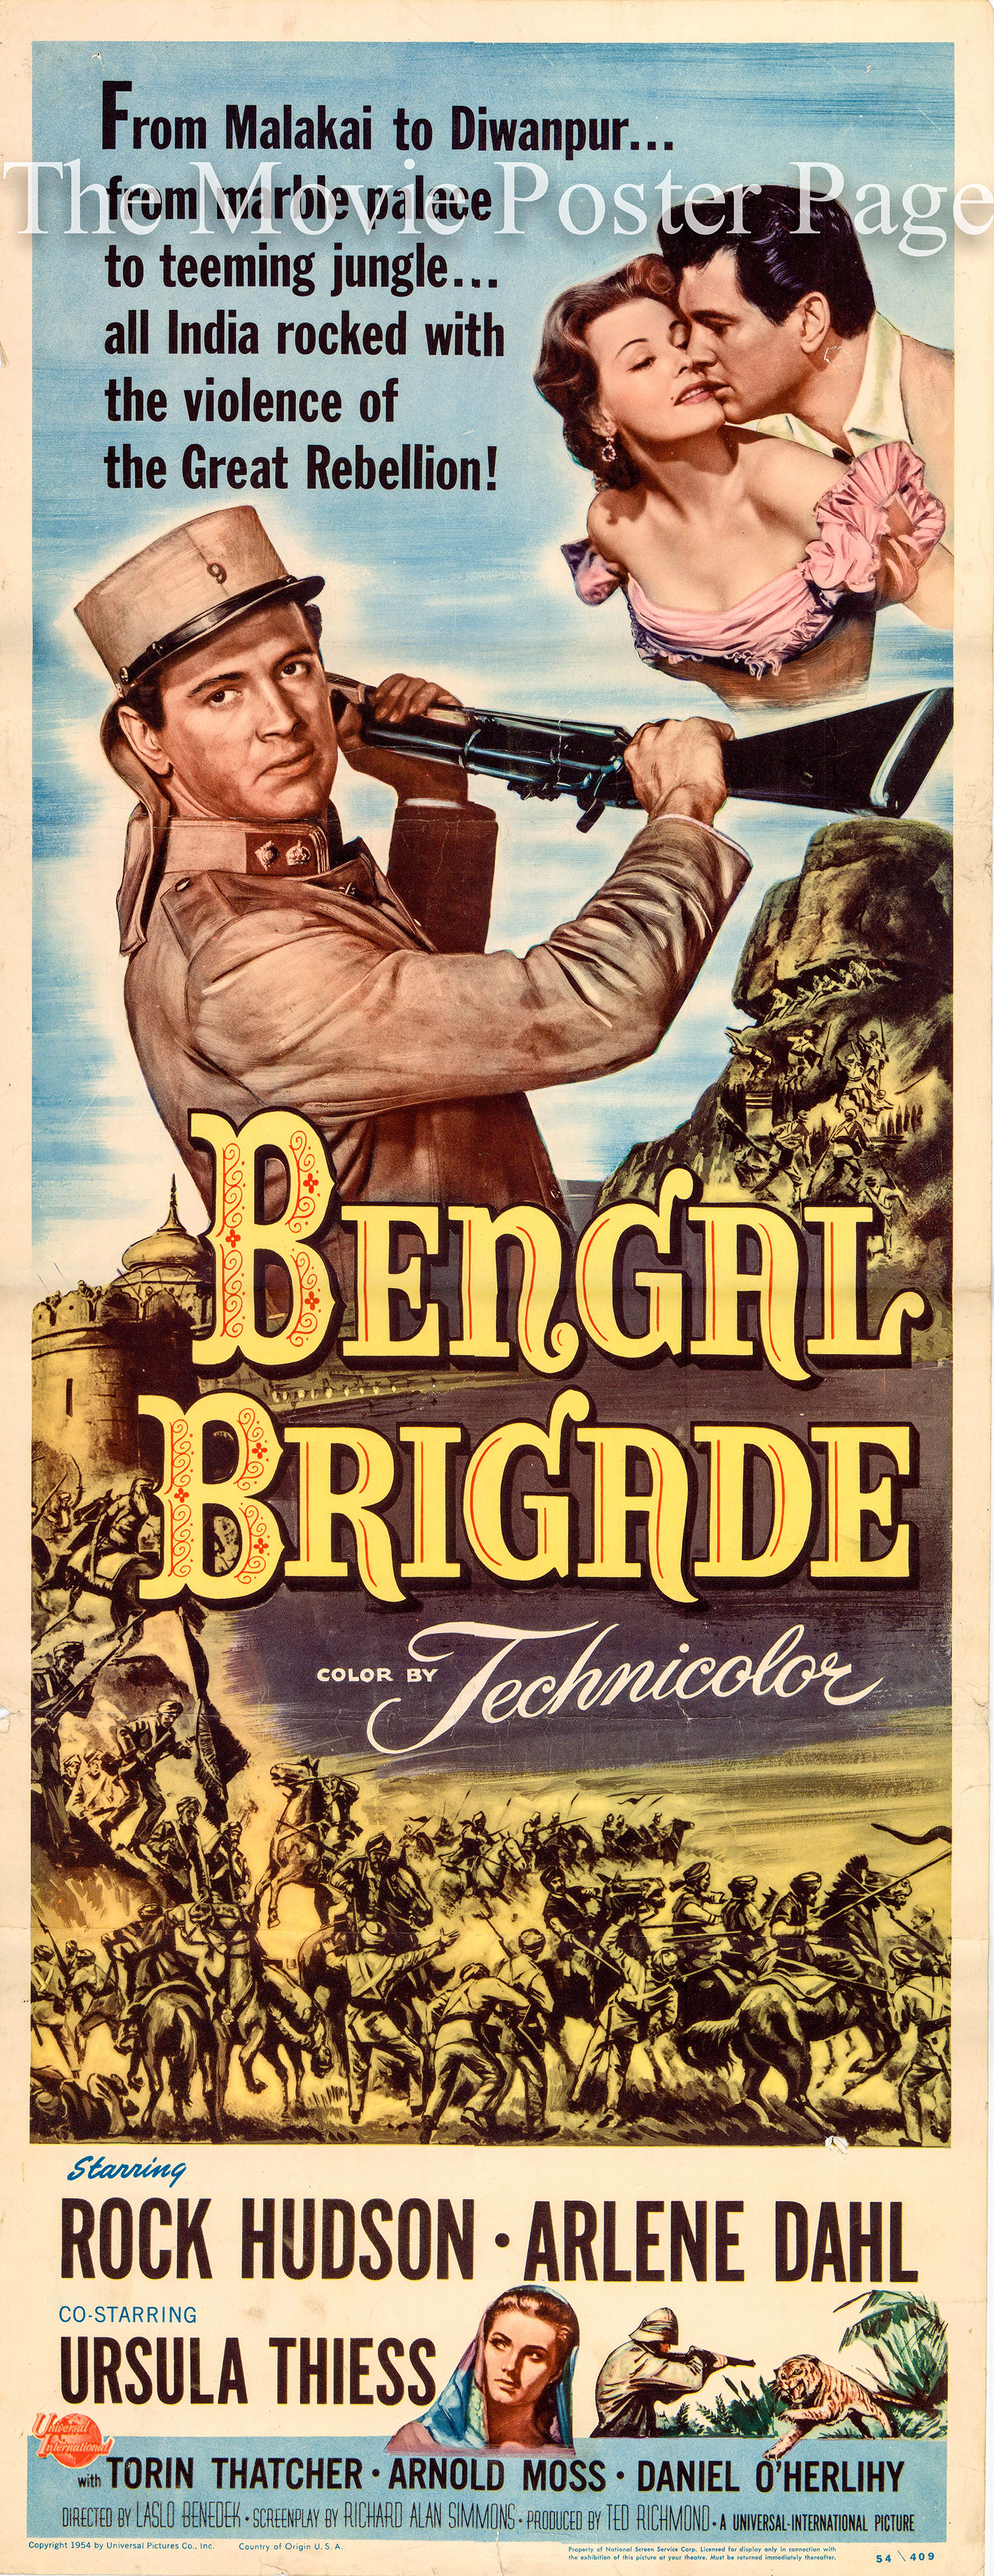 Pictured is a US insert promotional poster for the 1954 Laslo Benedek film Bengal Brigade starring Rock Hudson and Arlene Dahl.